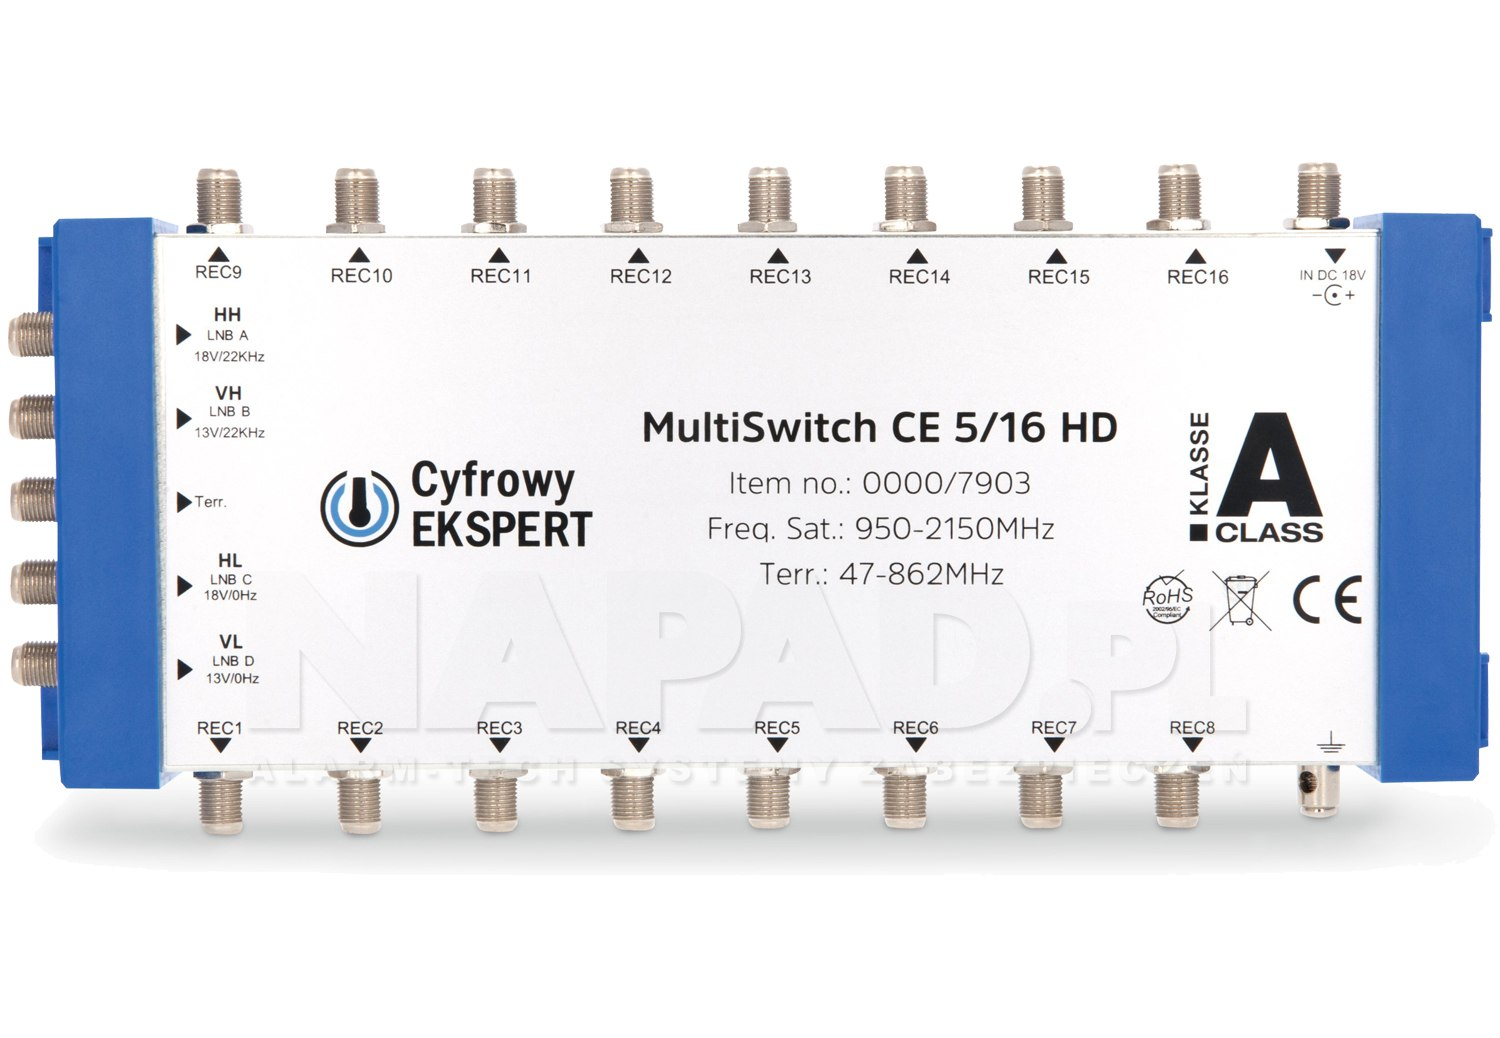 Multiswitch CE 5/16 HD